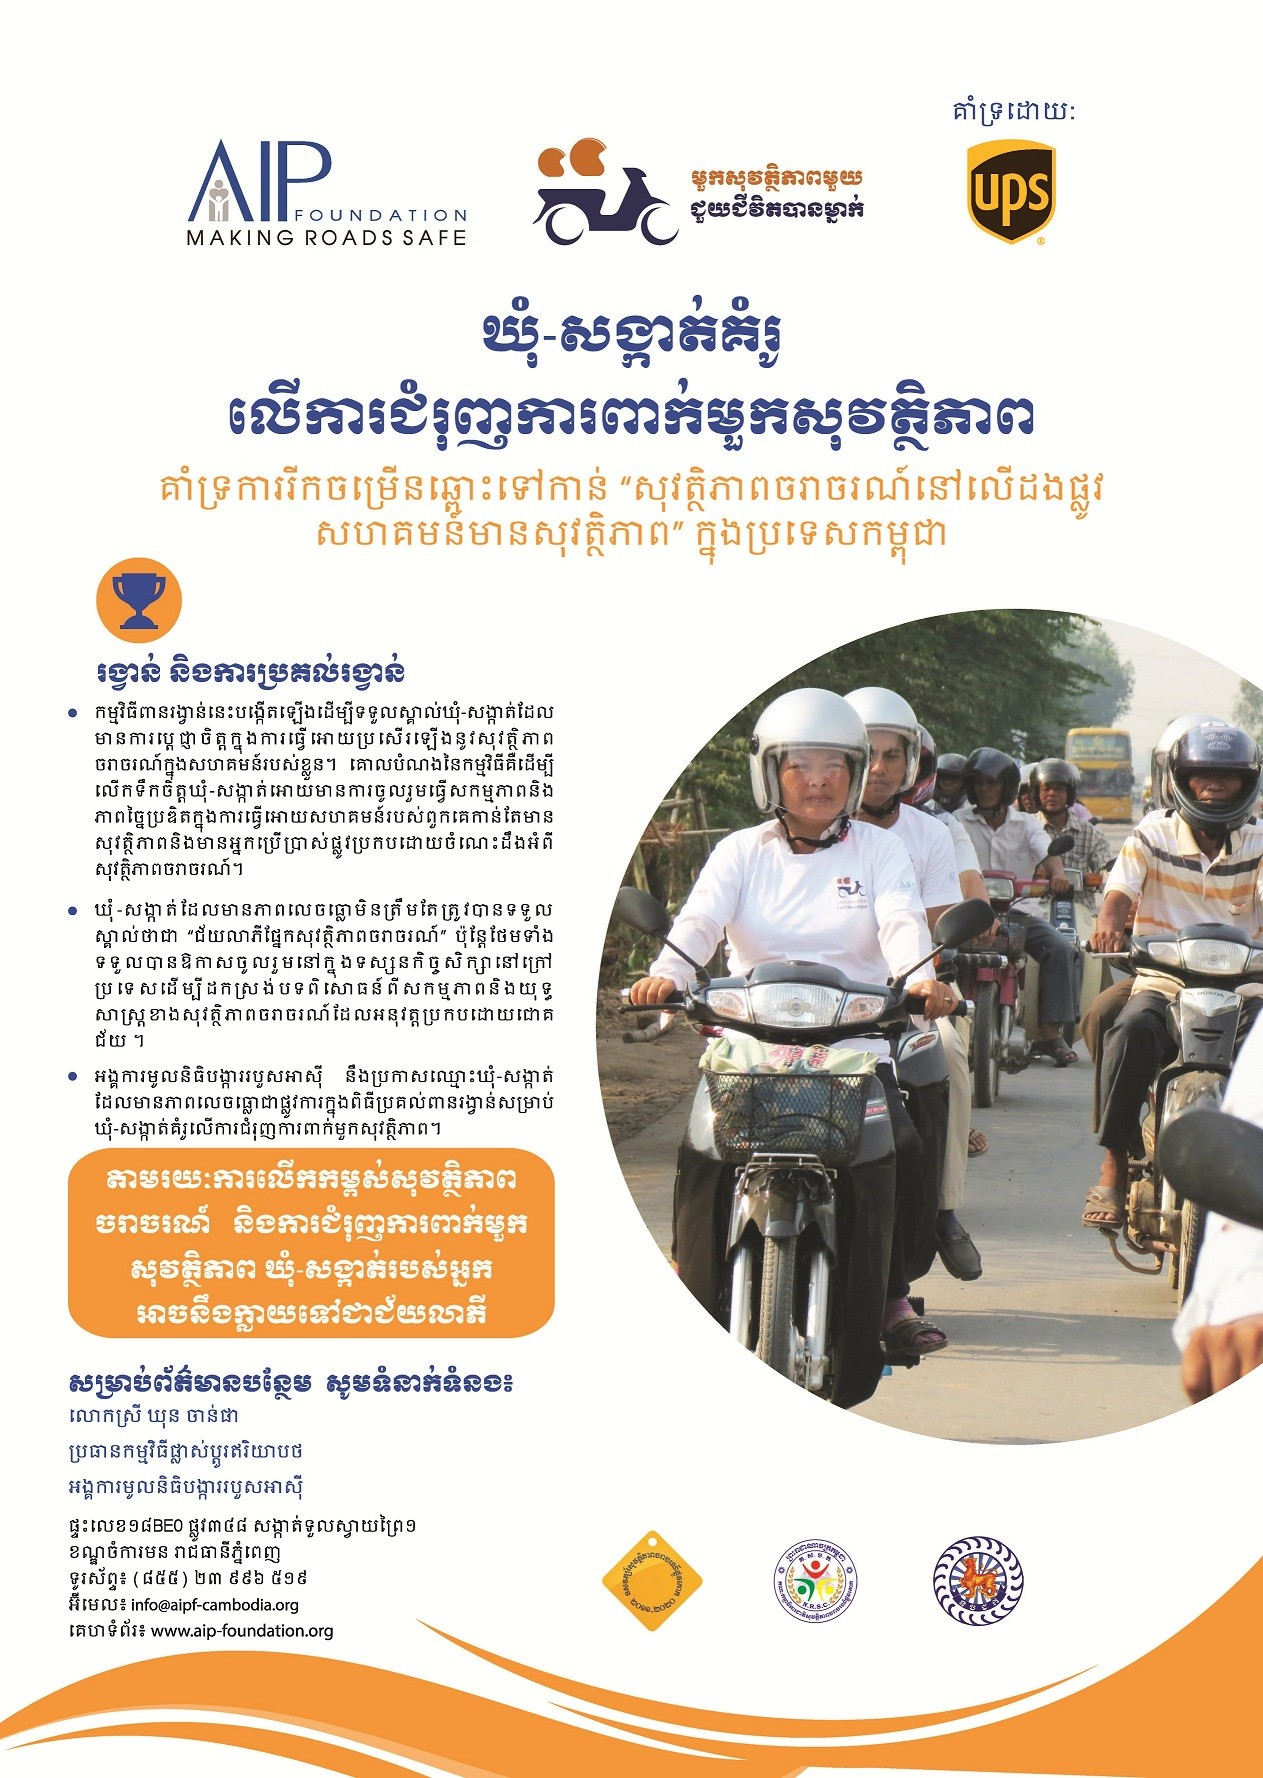 Poster on commune of excellence in helmet use